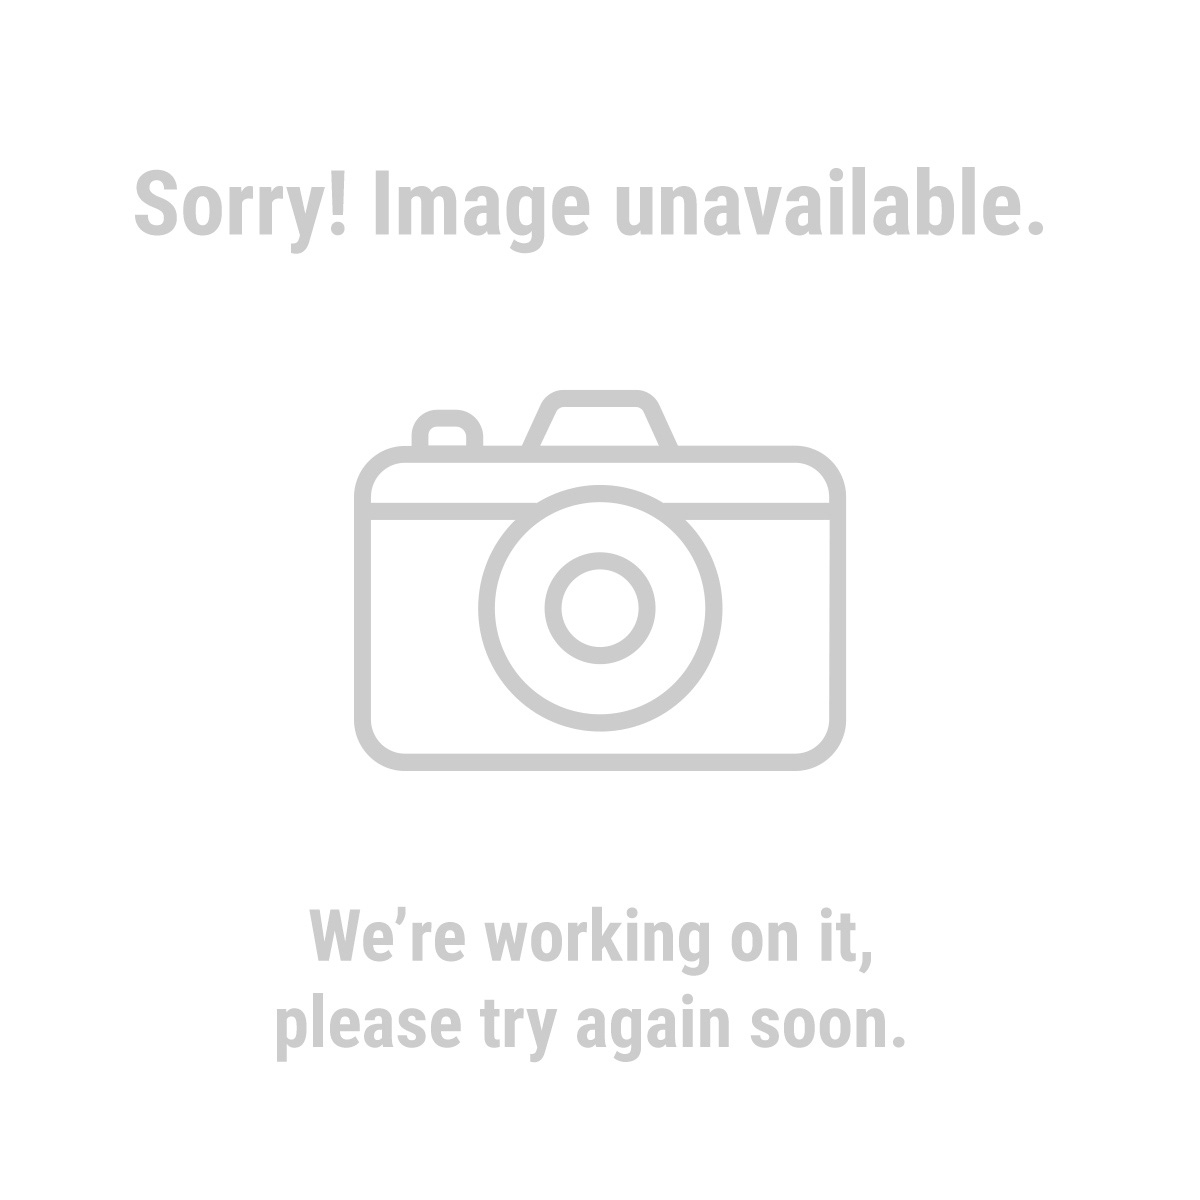 Chicago Electric Power Tools 98265 1.5 Horsepower 7 in. Bridge Tile Saw